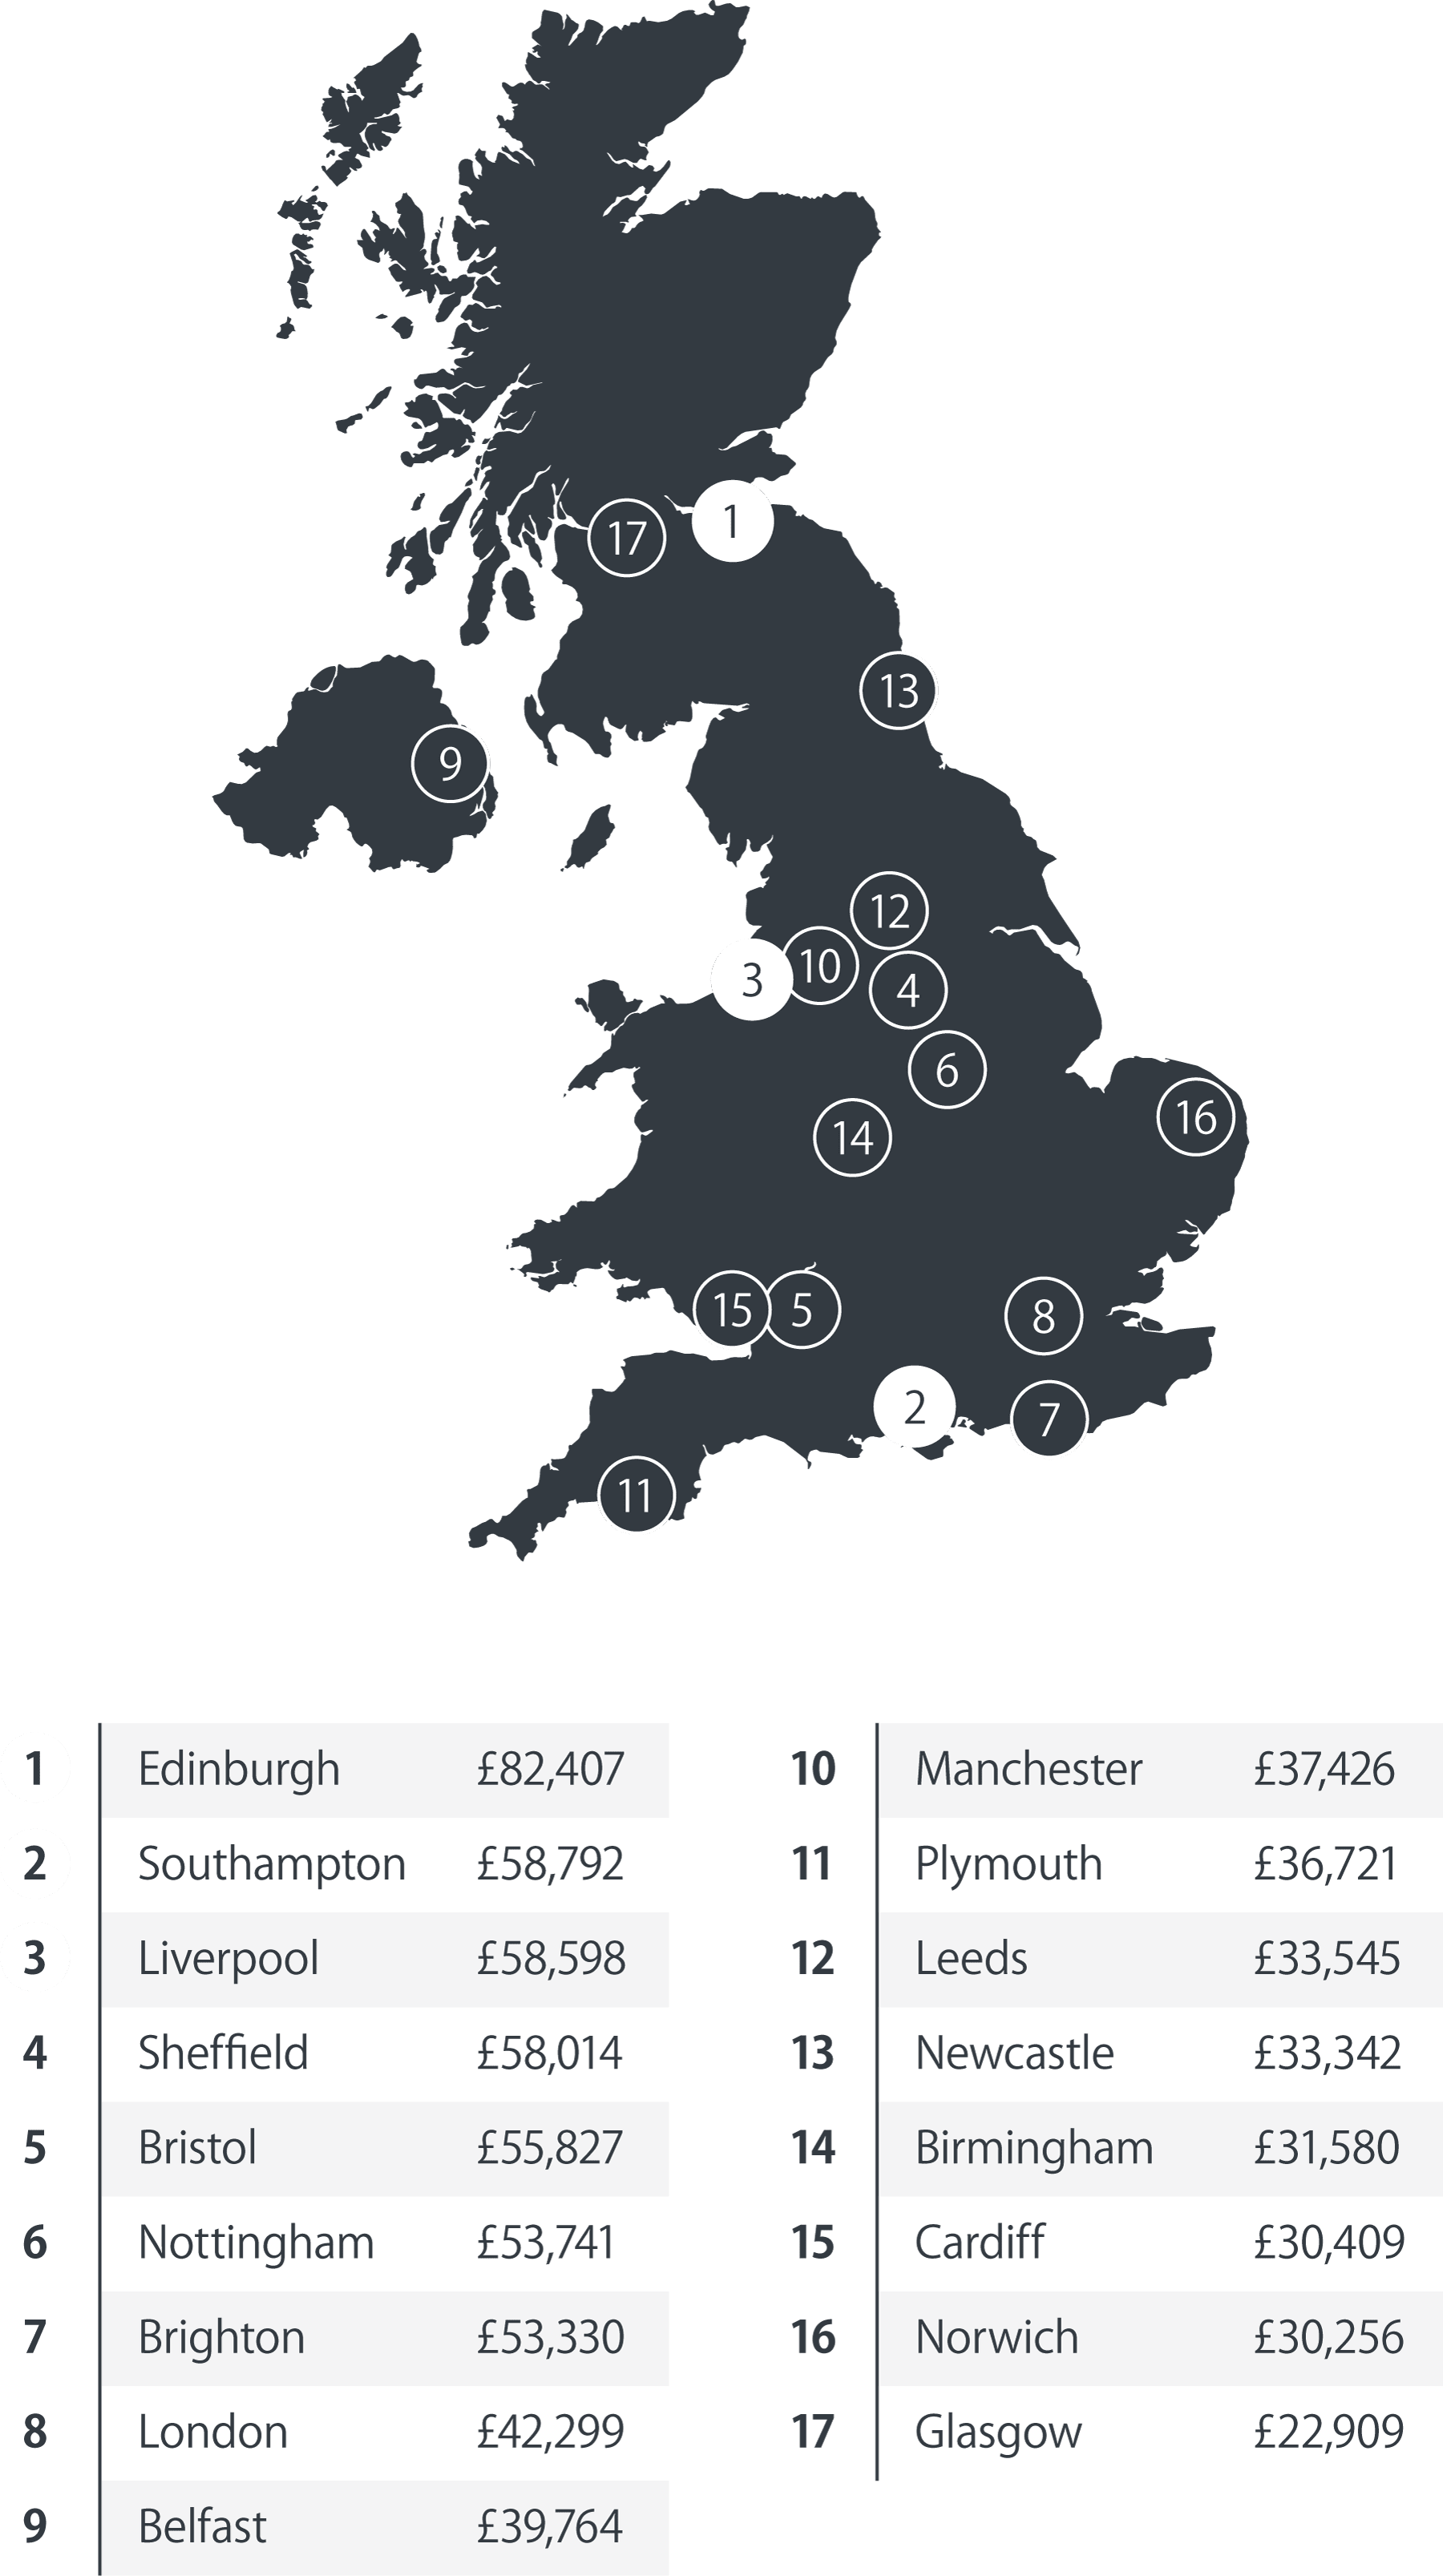 Graphic that shows the average pension savings pot sizes across the UK